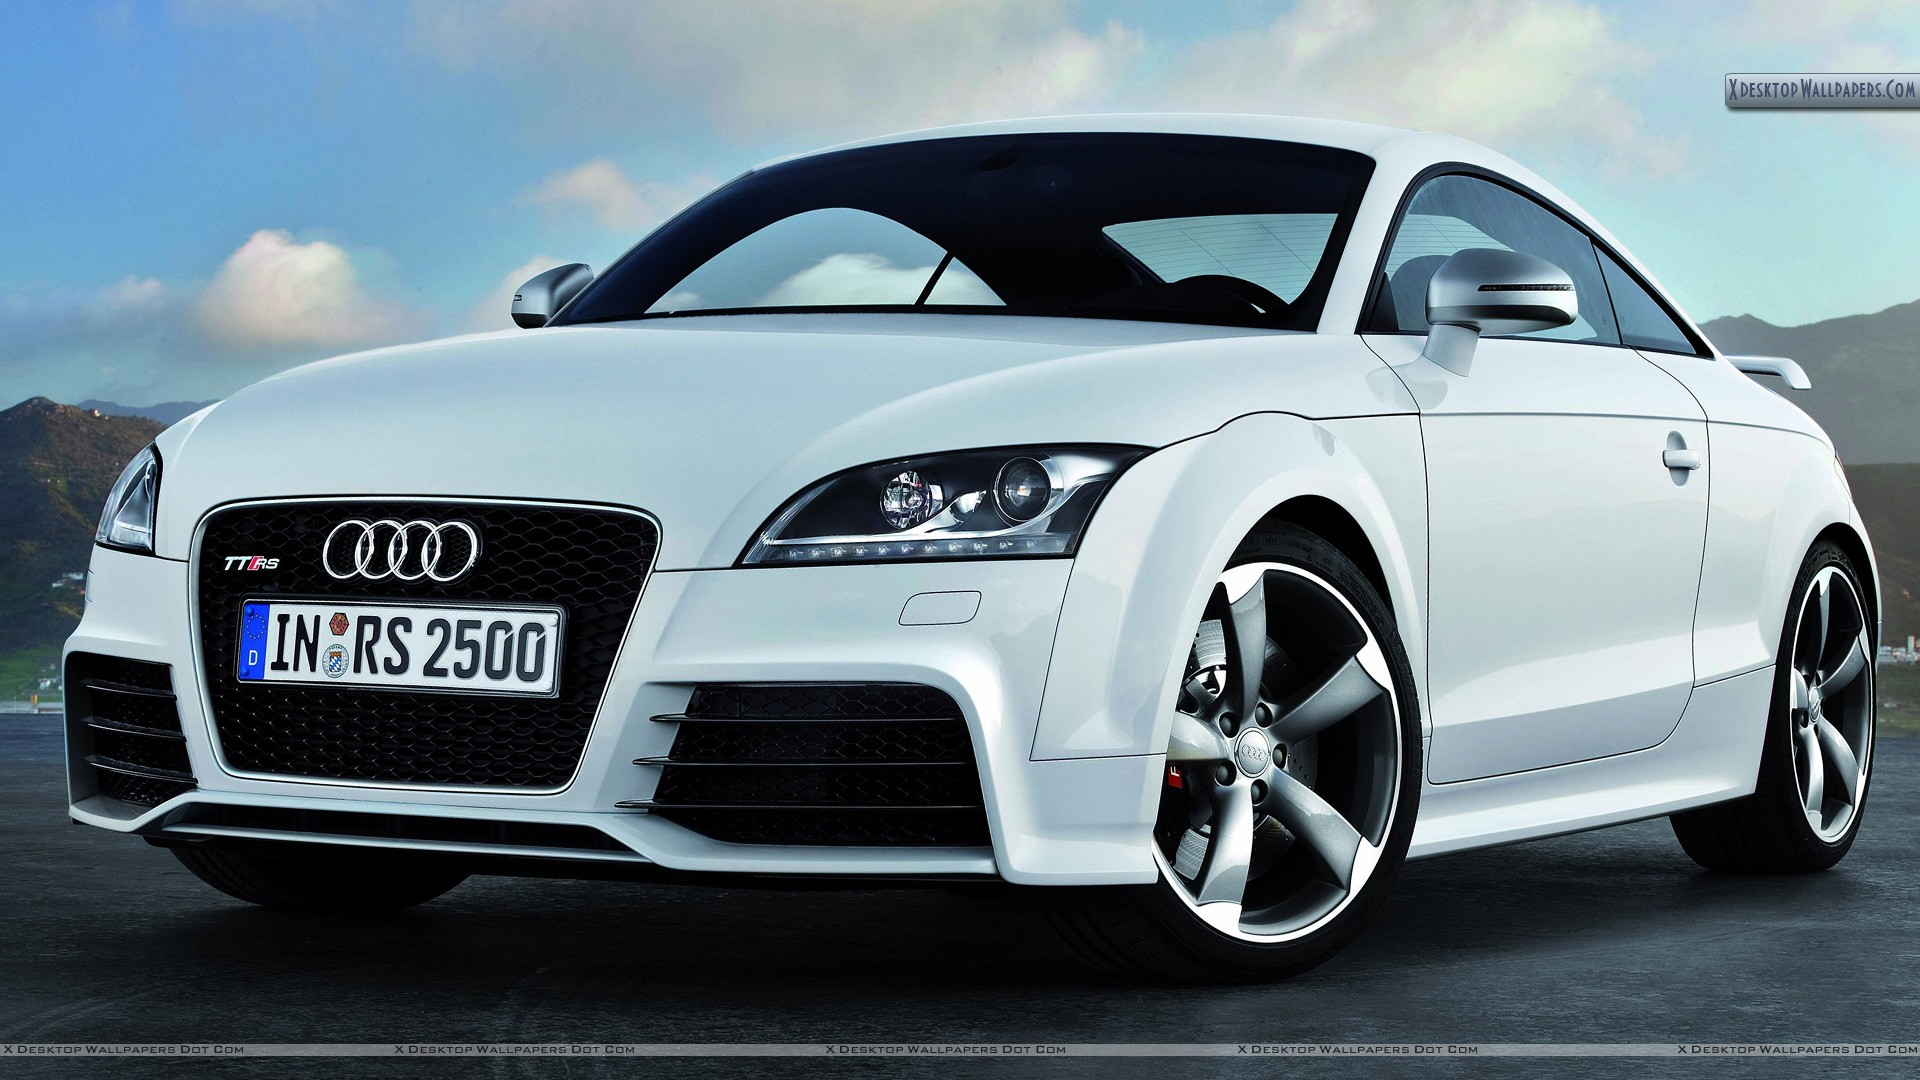 Audi Tt Rs White Color Front Pose Wallpaper Pin Dots Desktop On Pinterest You Are Viewing